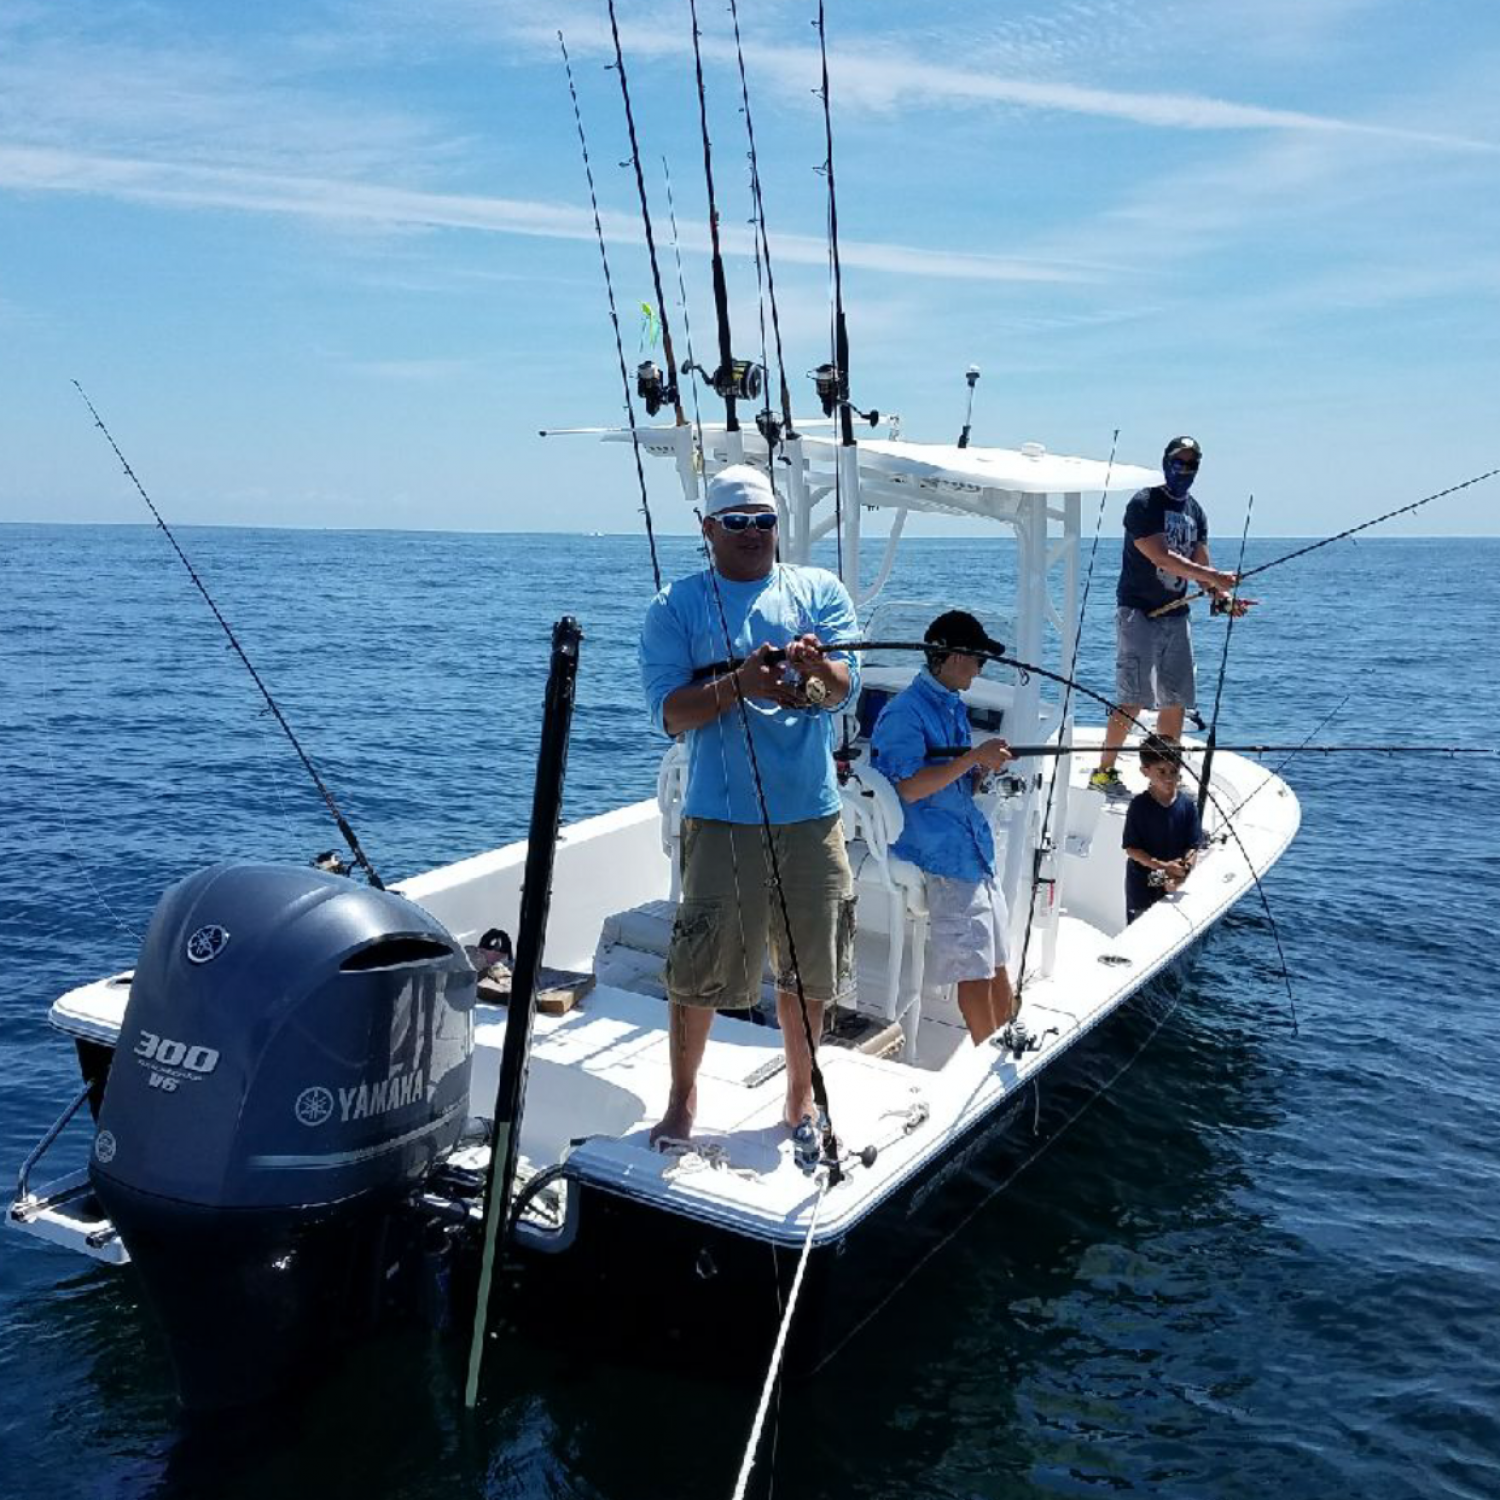 Title: Armed And Ready - On board their Sportsman Masters 247 Bay Boat - Location: Jacksonville, Florida. Participating in the Photo Contest #SportsmanAugust2017